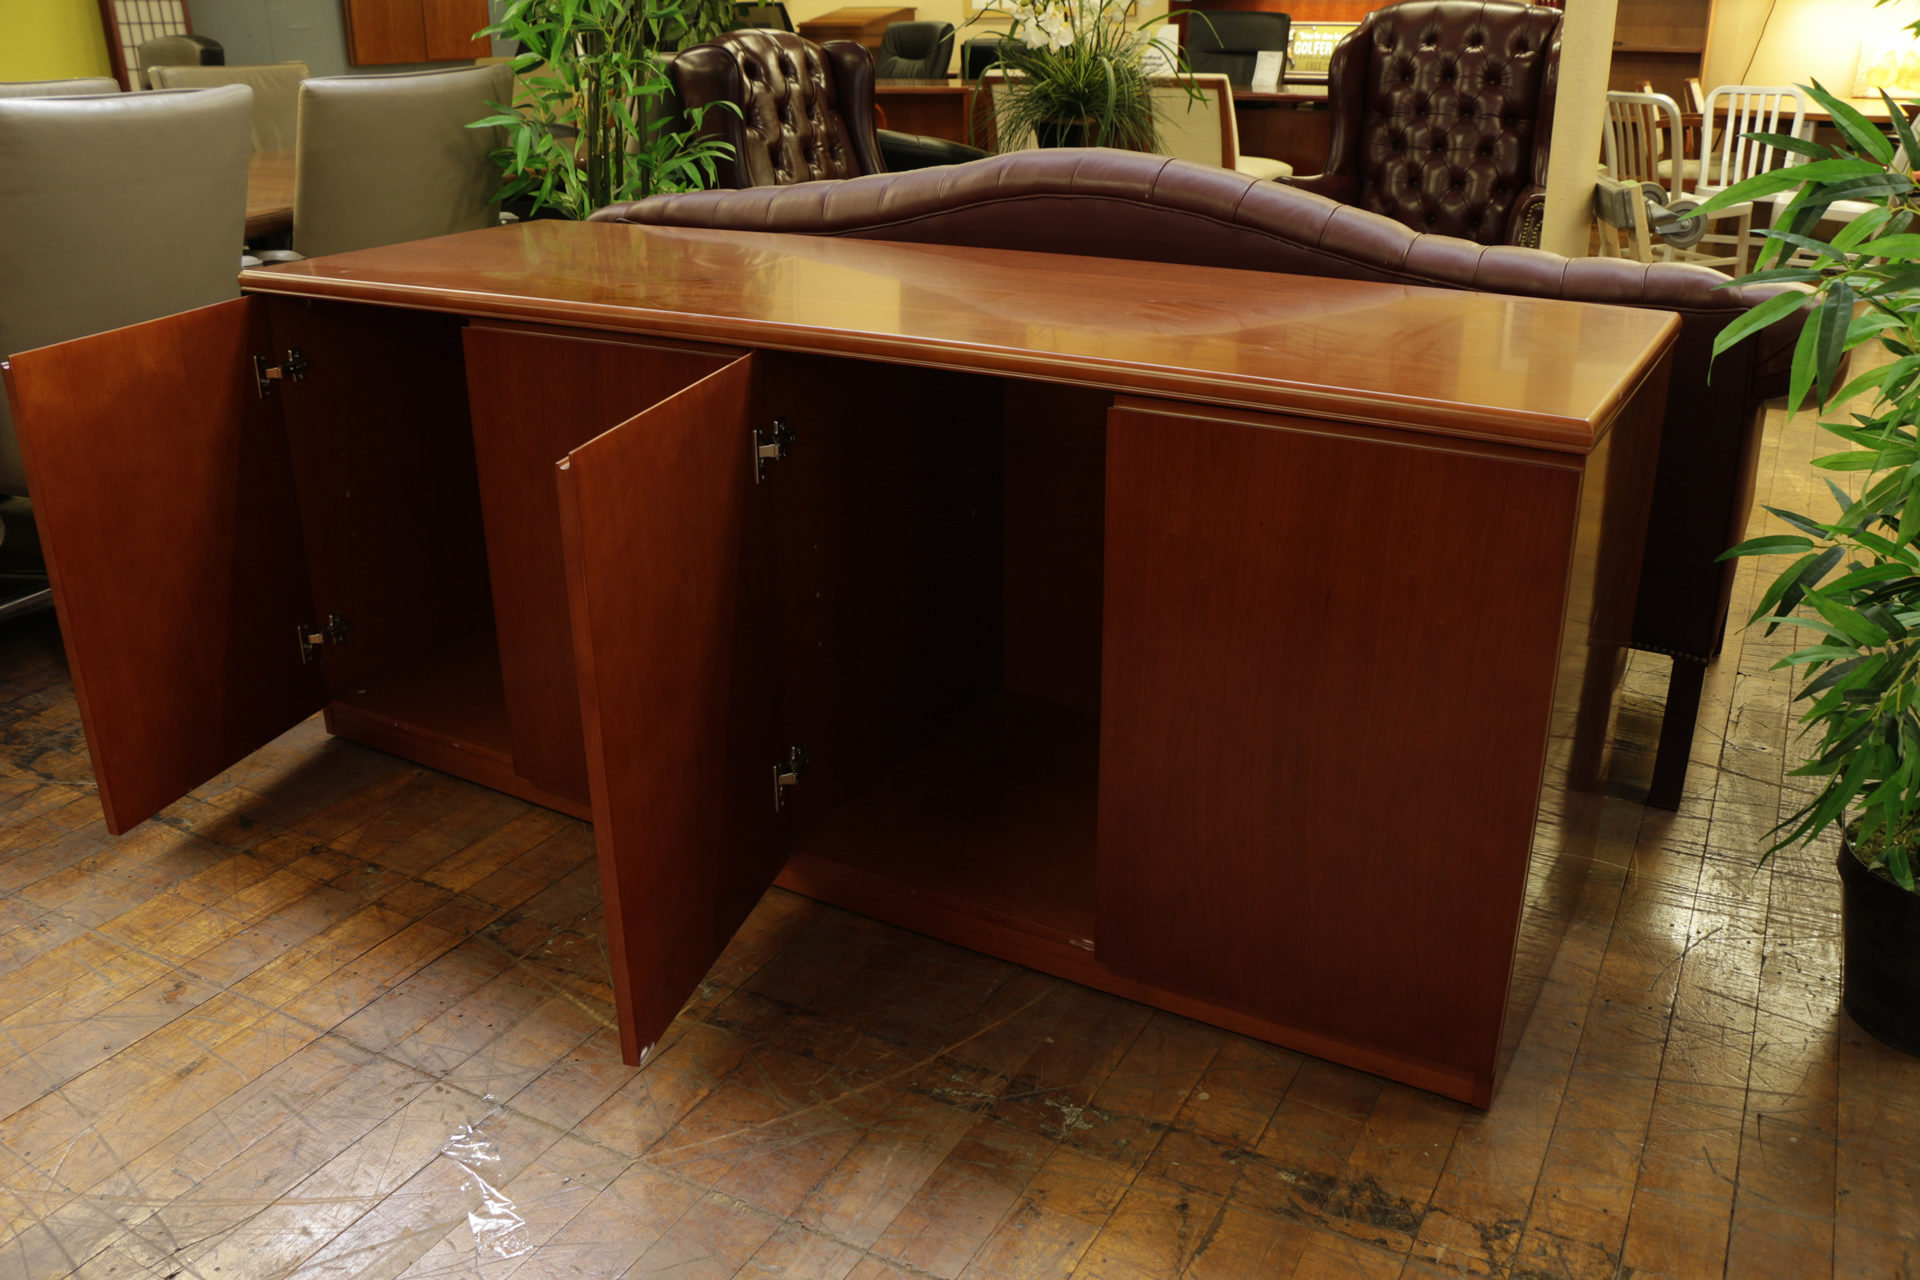 peartreeofficefurniture_peartreeofficefurniture_mg_2598.jpg